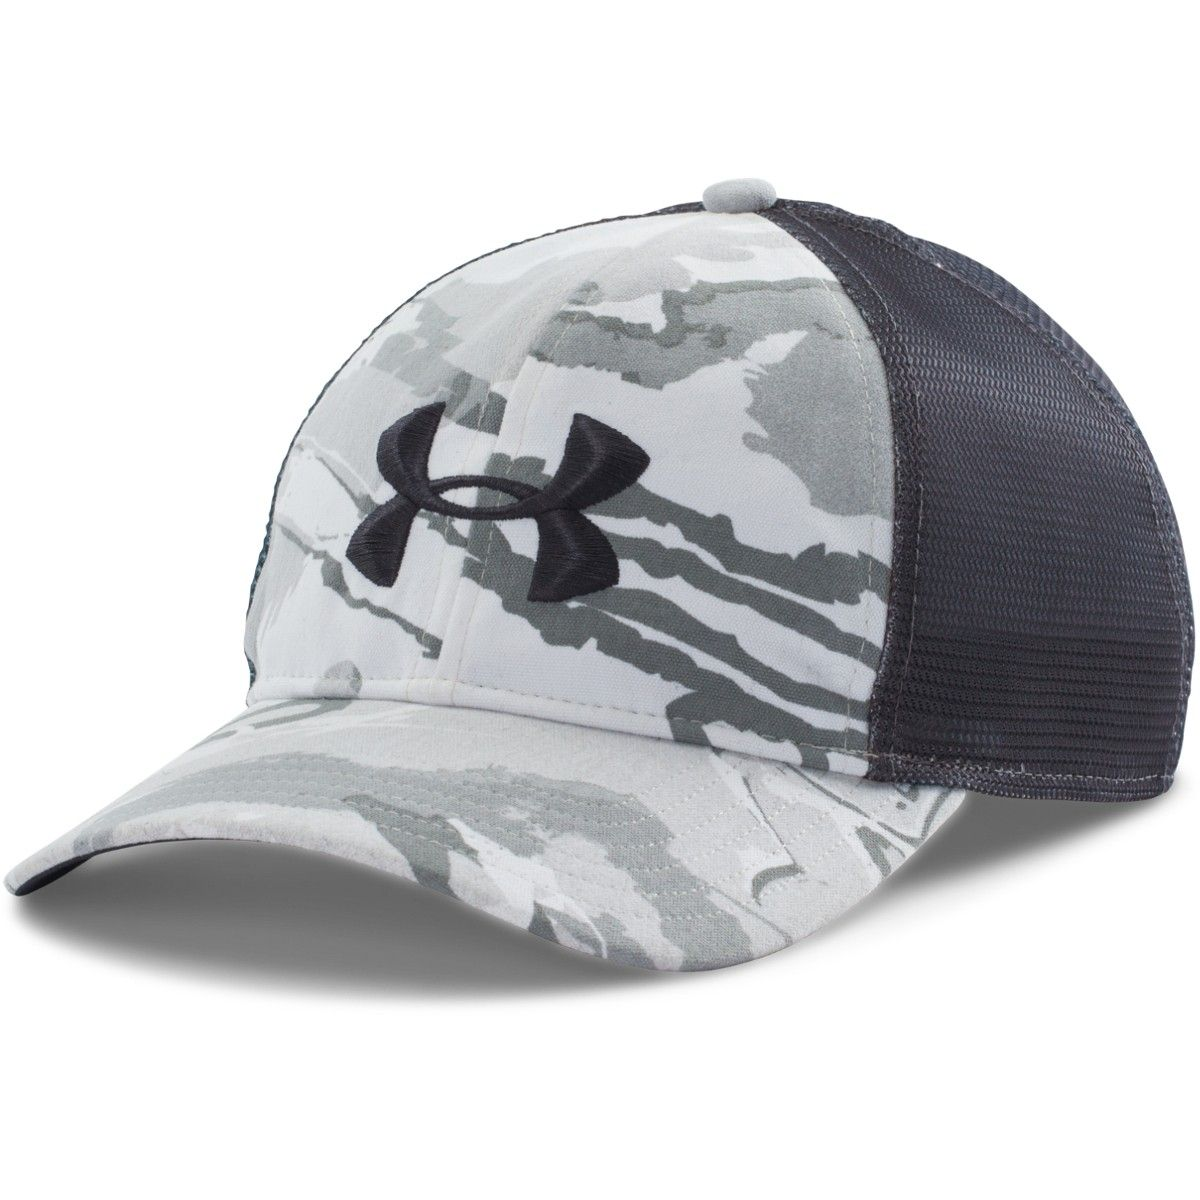 4ded29859ff buy under armour antler mesh cap 196e9 12ded